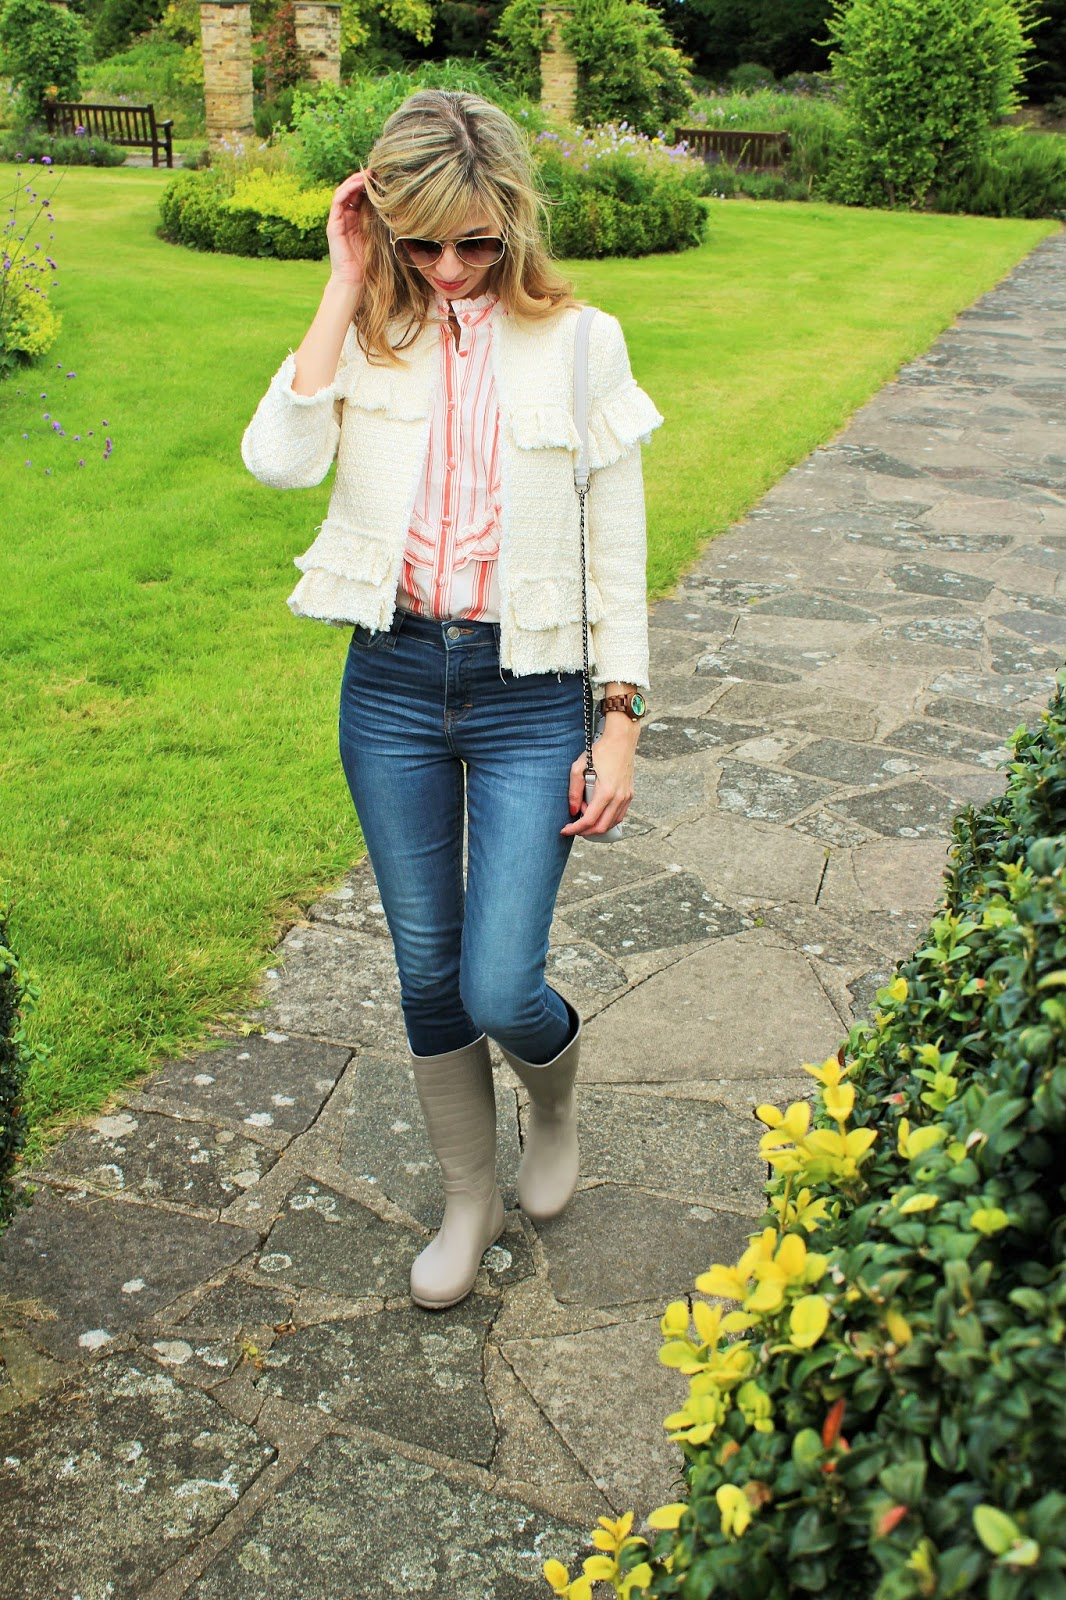 Rain or Shine 4 - OOTD featuring Topshop, Zara and Butterfly Twists